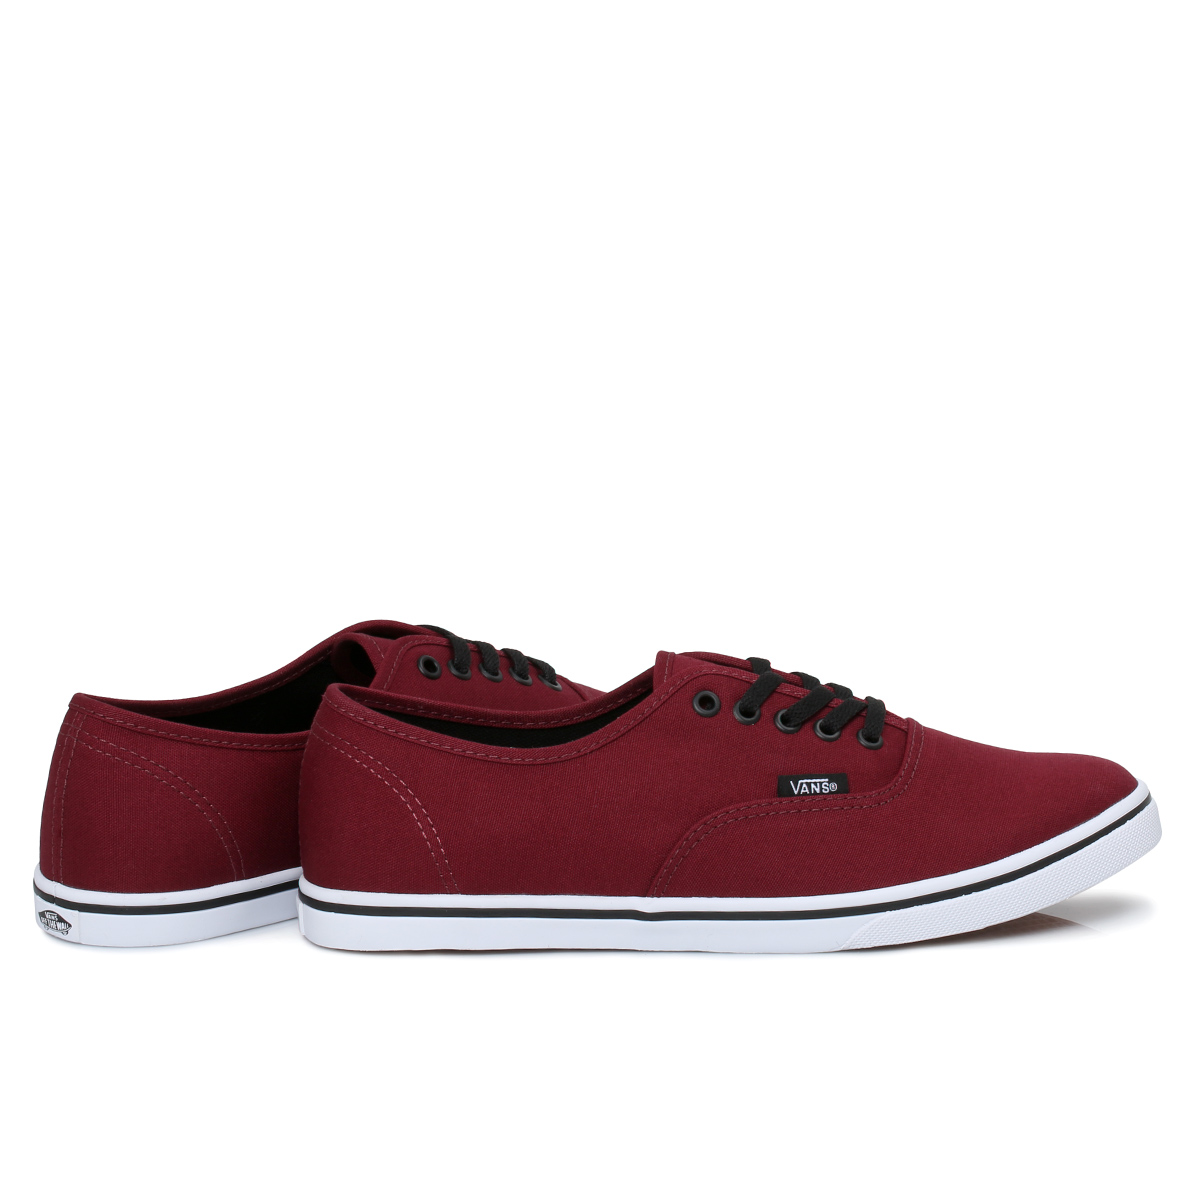 vans authentic lo pro port burgundy canvas womens trainers. Black Bedroom Furniture Sets. Home Design Ideas